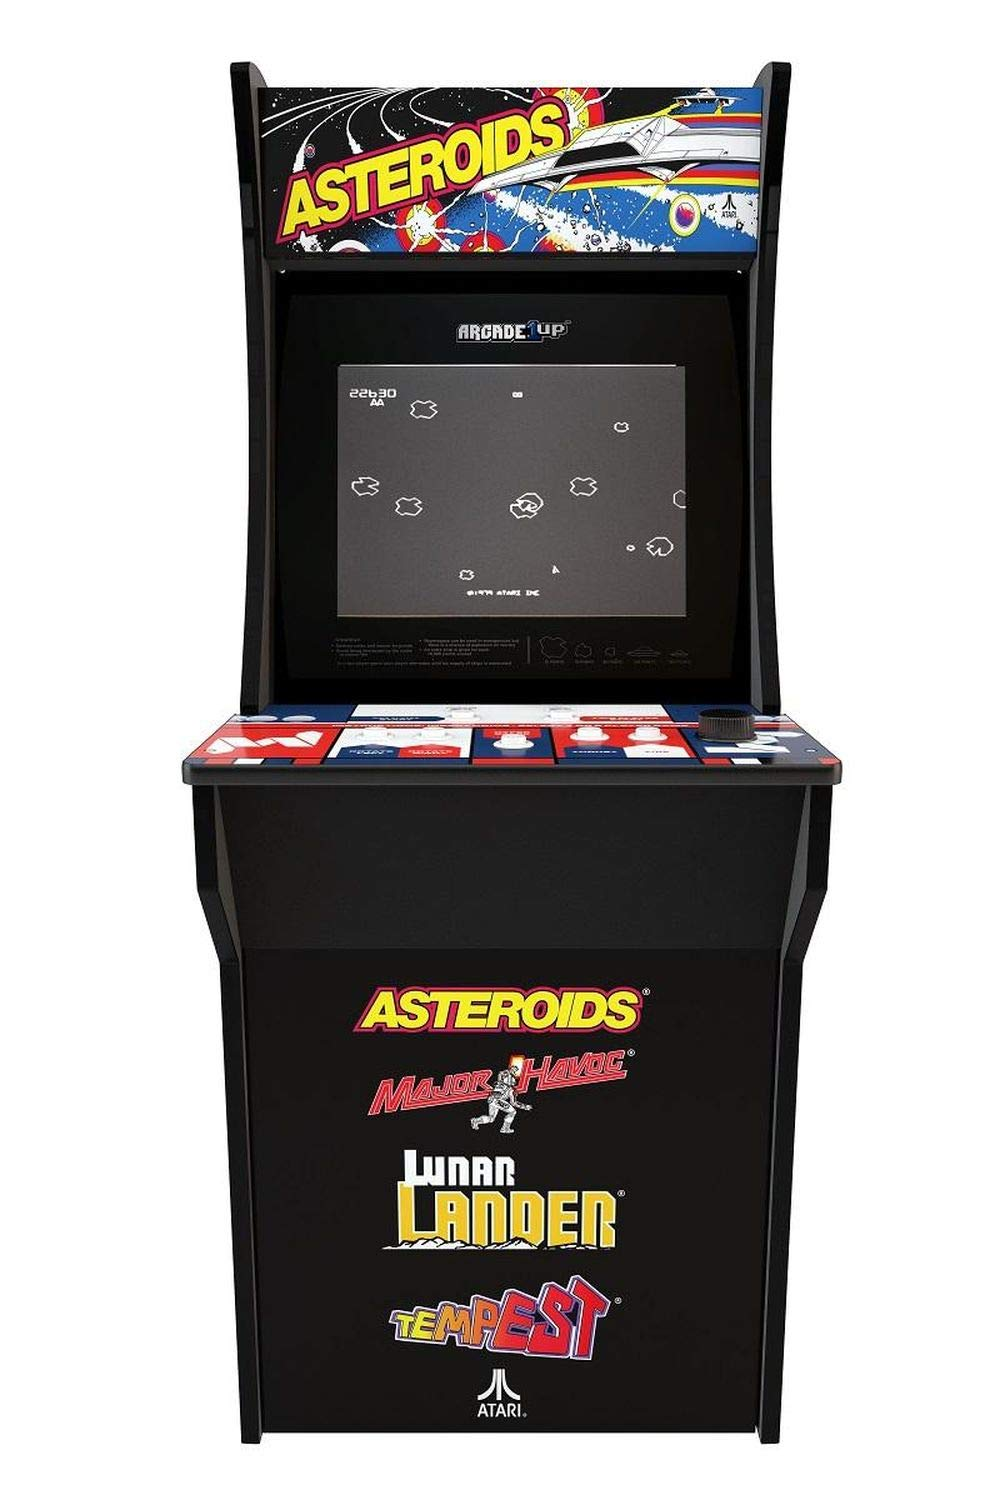 Arcade 1Up – Asteroids Deluxe Classic Arcade Game Cabinet for Kids and Adults – 3/4 Scale – Coinless Operation – 4 Games in 1 (Asteroids, Major Havoc, Lunar Lander and Tempest)